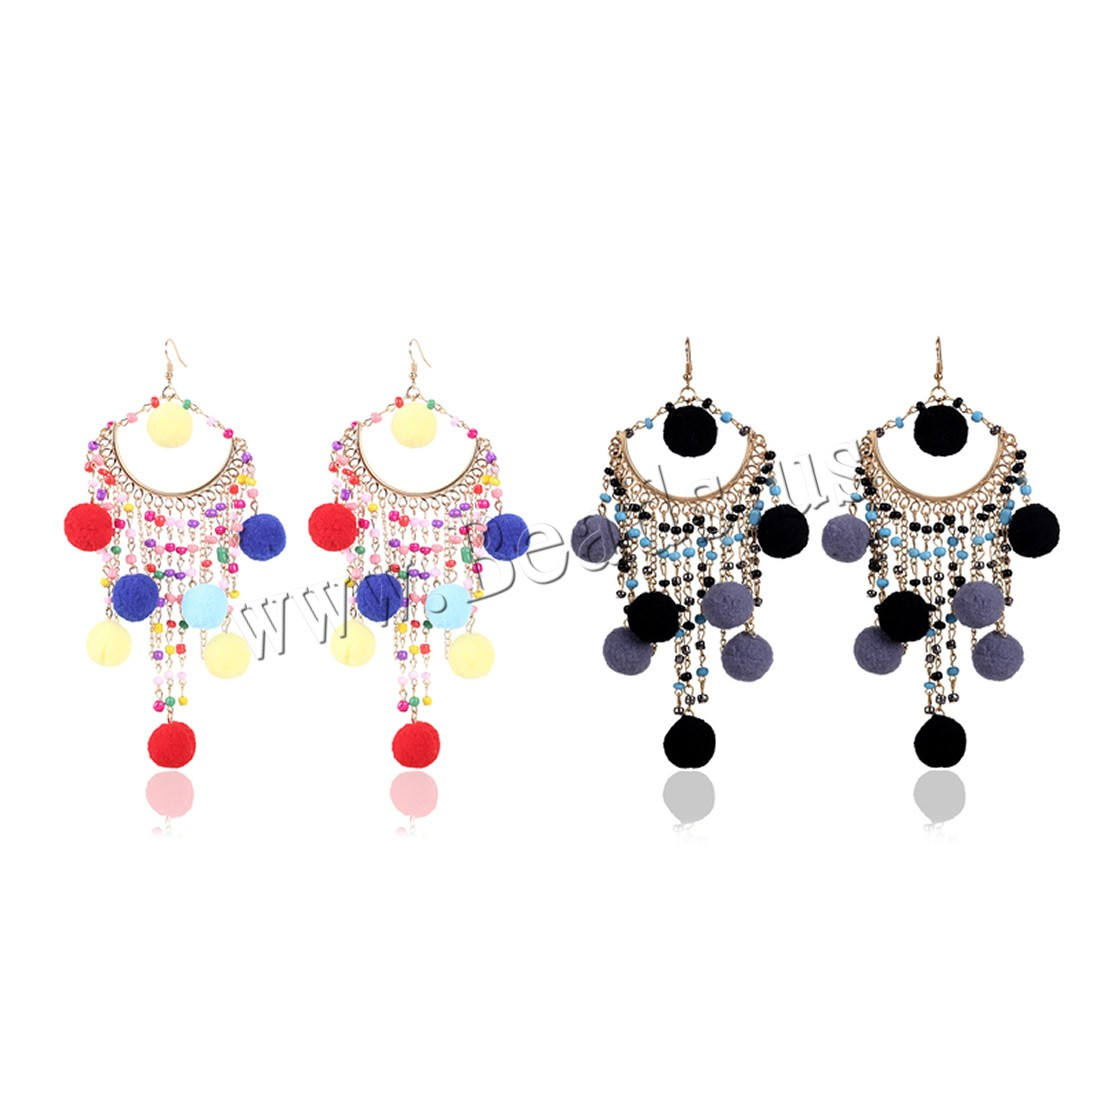 Buy Zinc Alloy Drop Earring Plush & Glass Seed Beads iron earring hook gold color plated woman colors choice lead & cadmium free 155mm Sold Pair